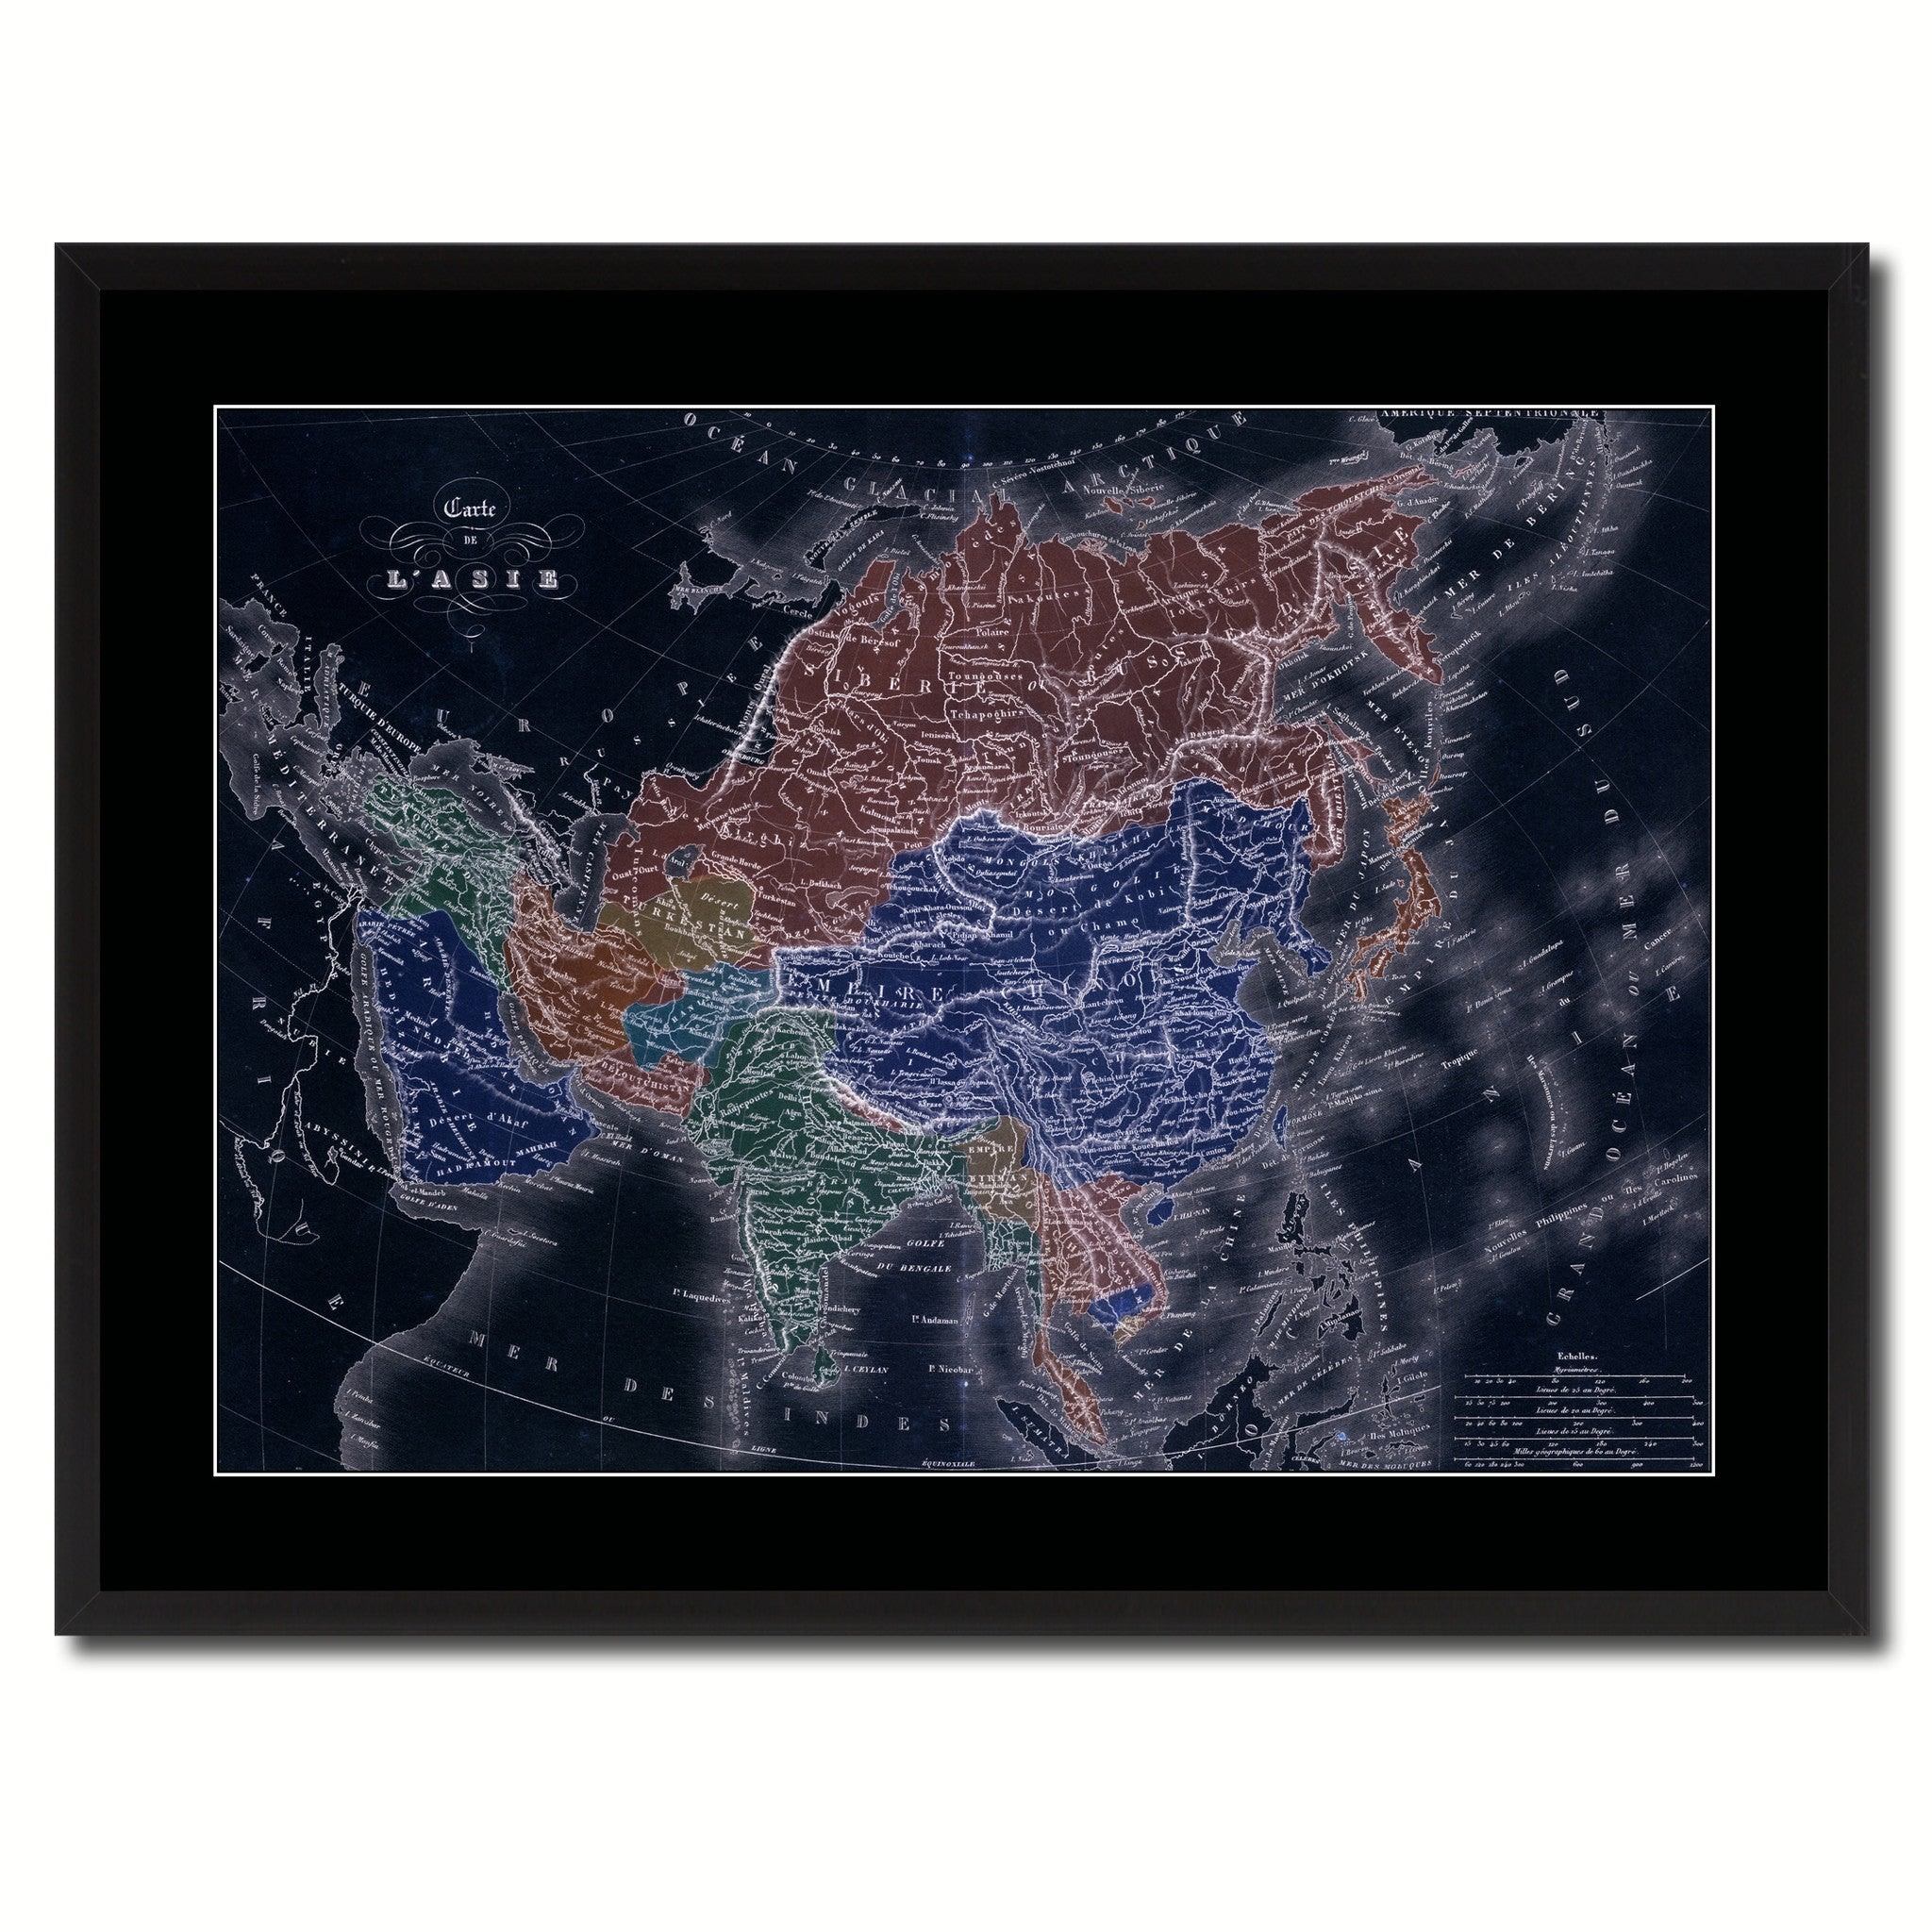 Asia Vintage Vivid Color Map Canvas Print, Picture Frame Home Decor Wall Art Office Decoration Gift Ideas